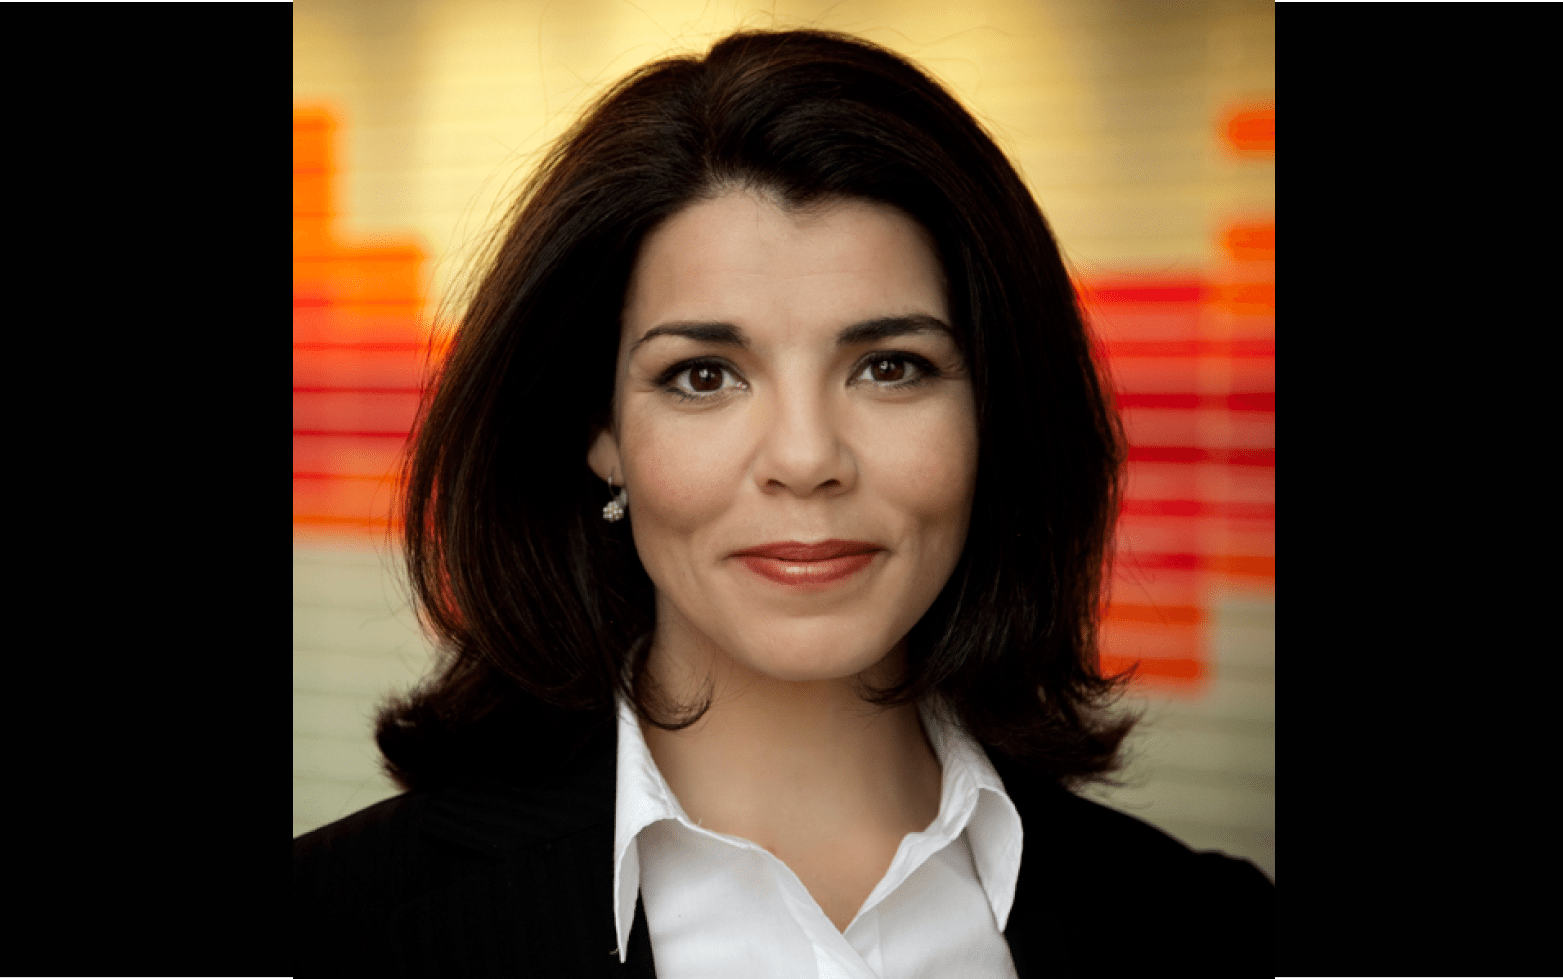 Celeste Headlee, Author And Acclaimed Journalist